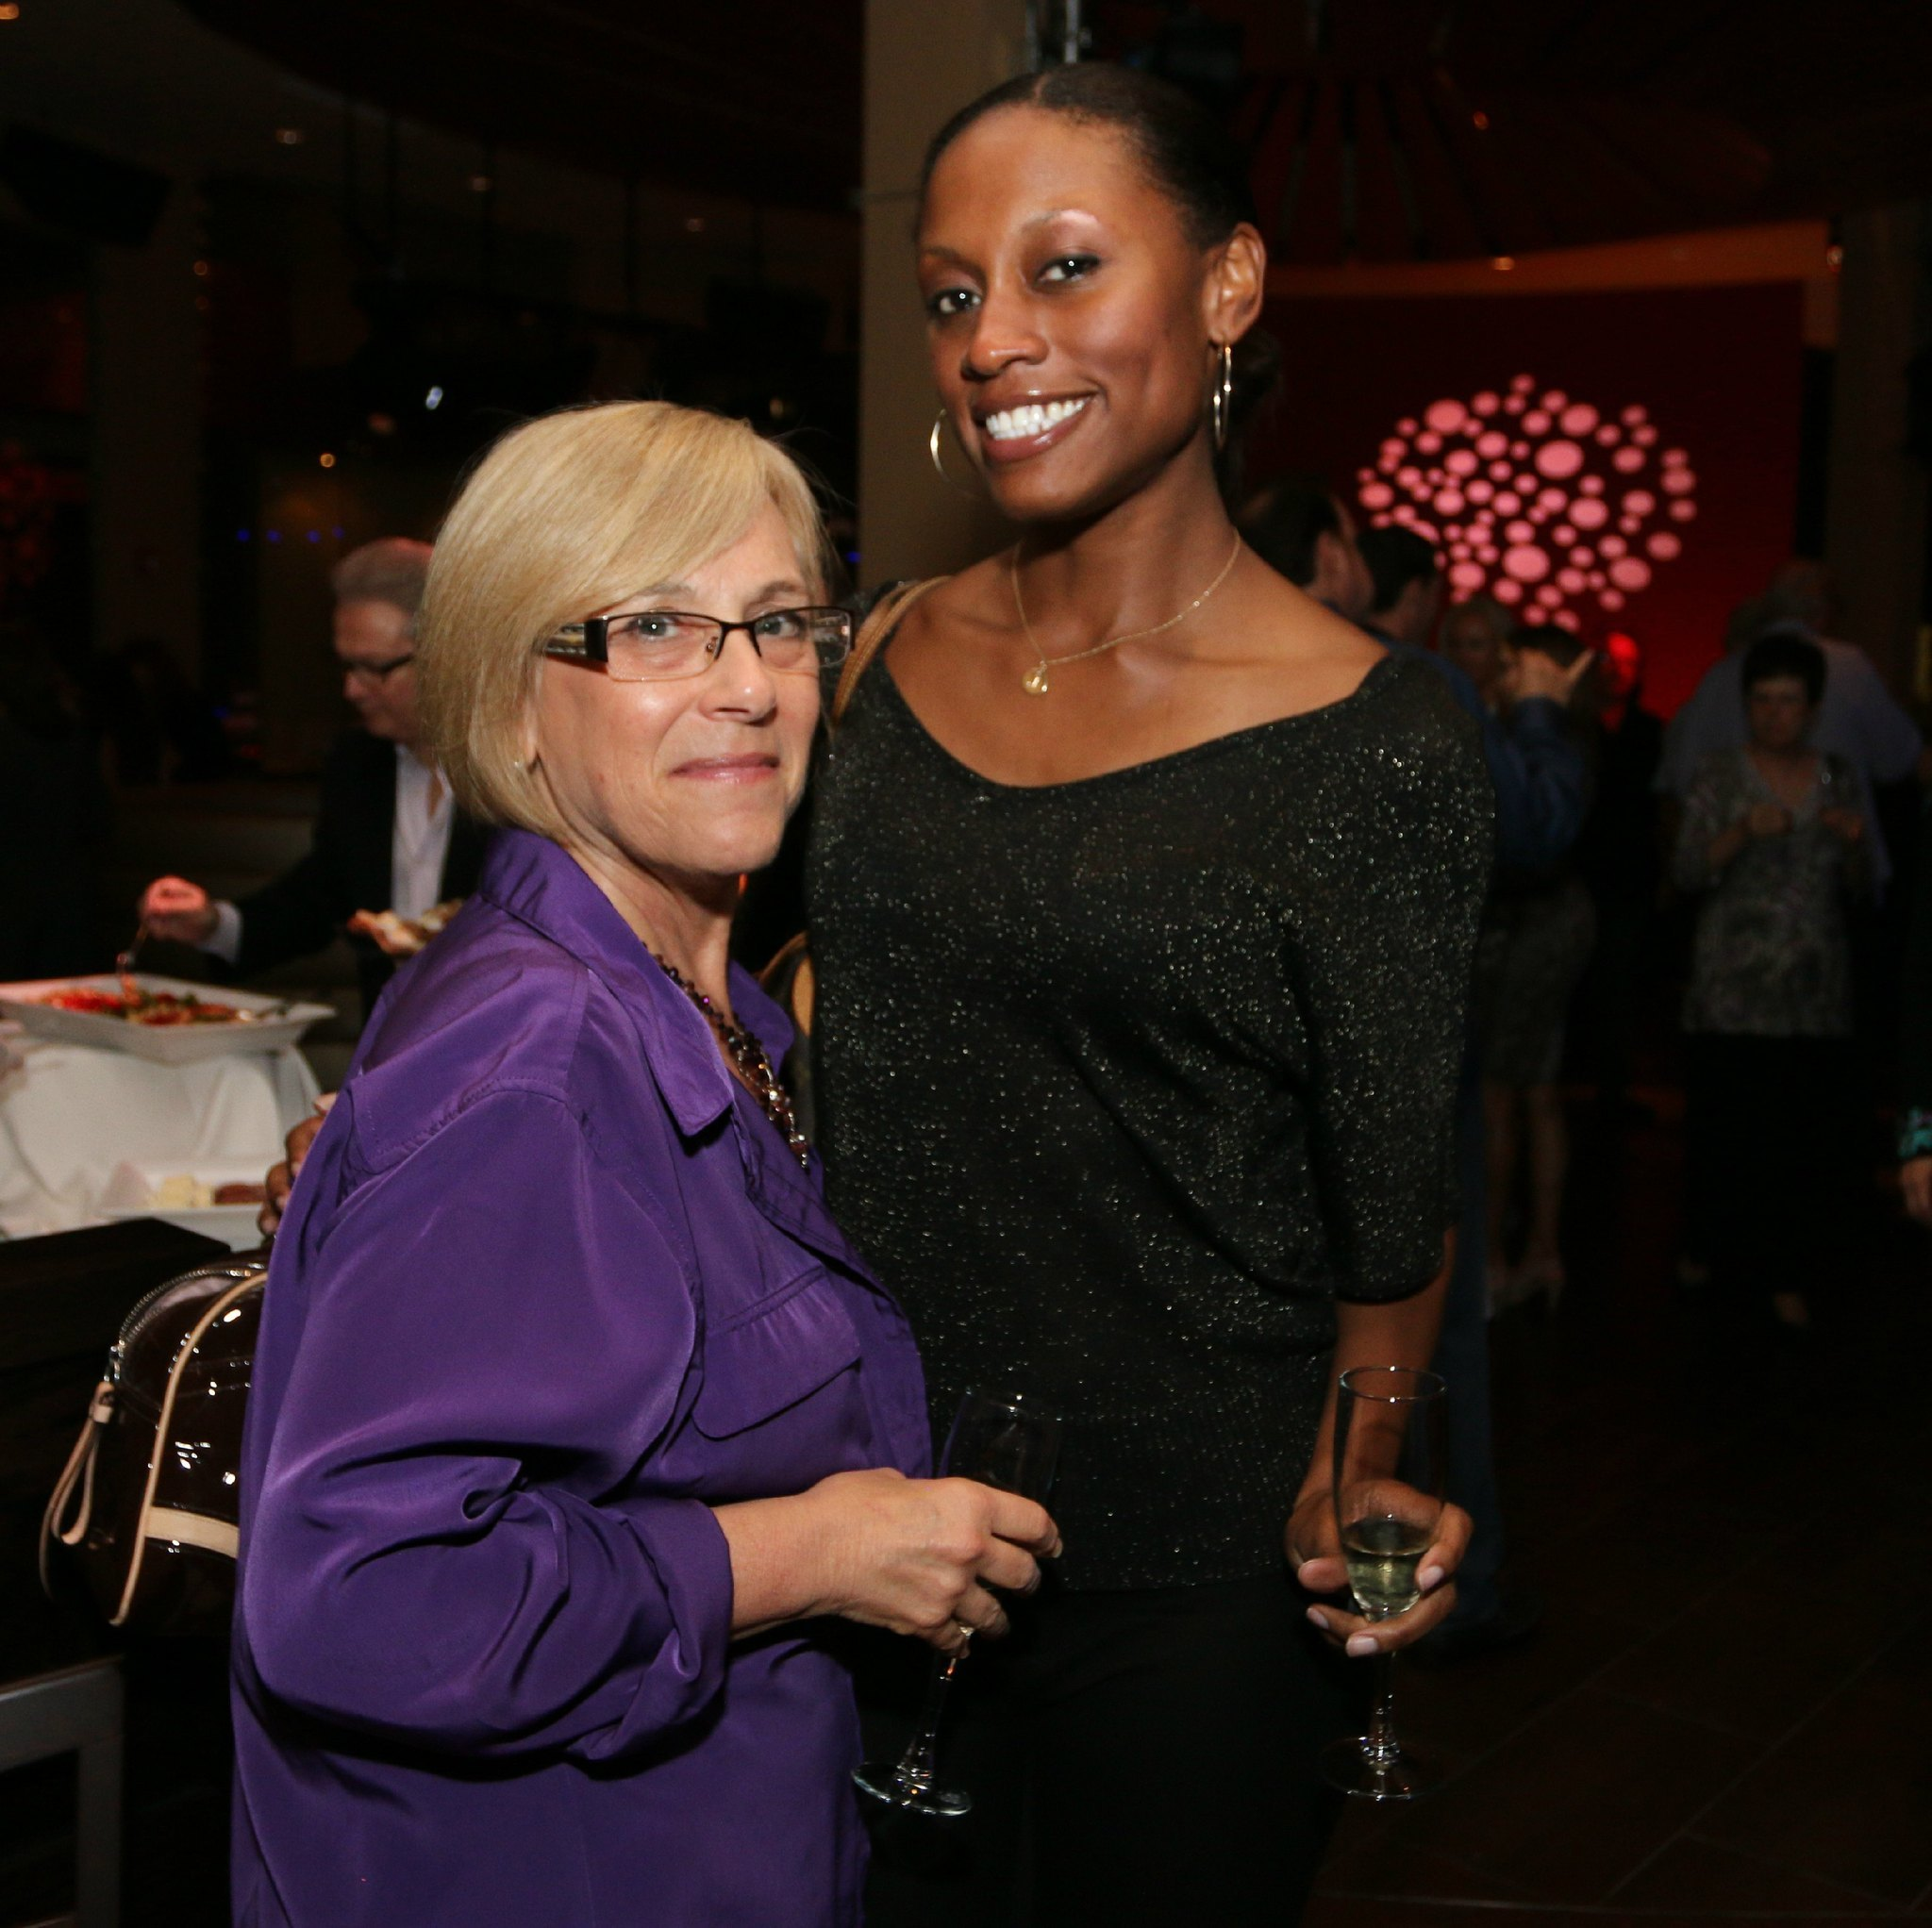 Jazziz Nightlife Grand Opening Party - Kathy Doherty and Jania McGee